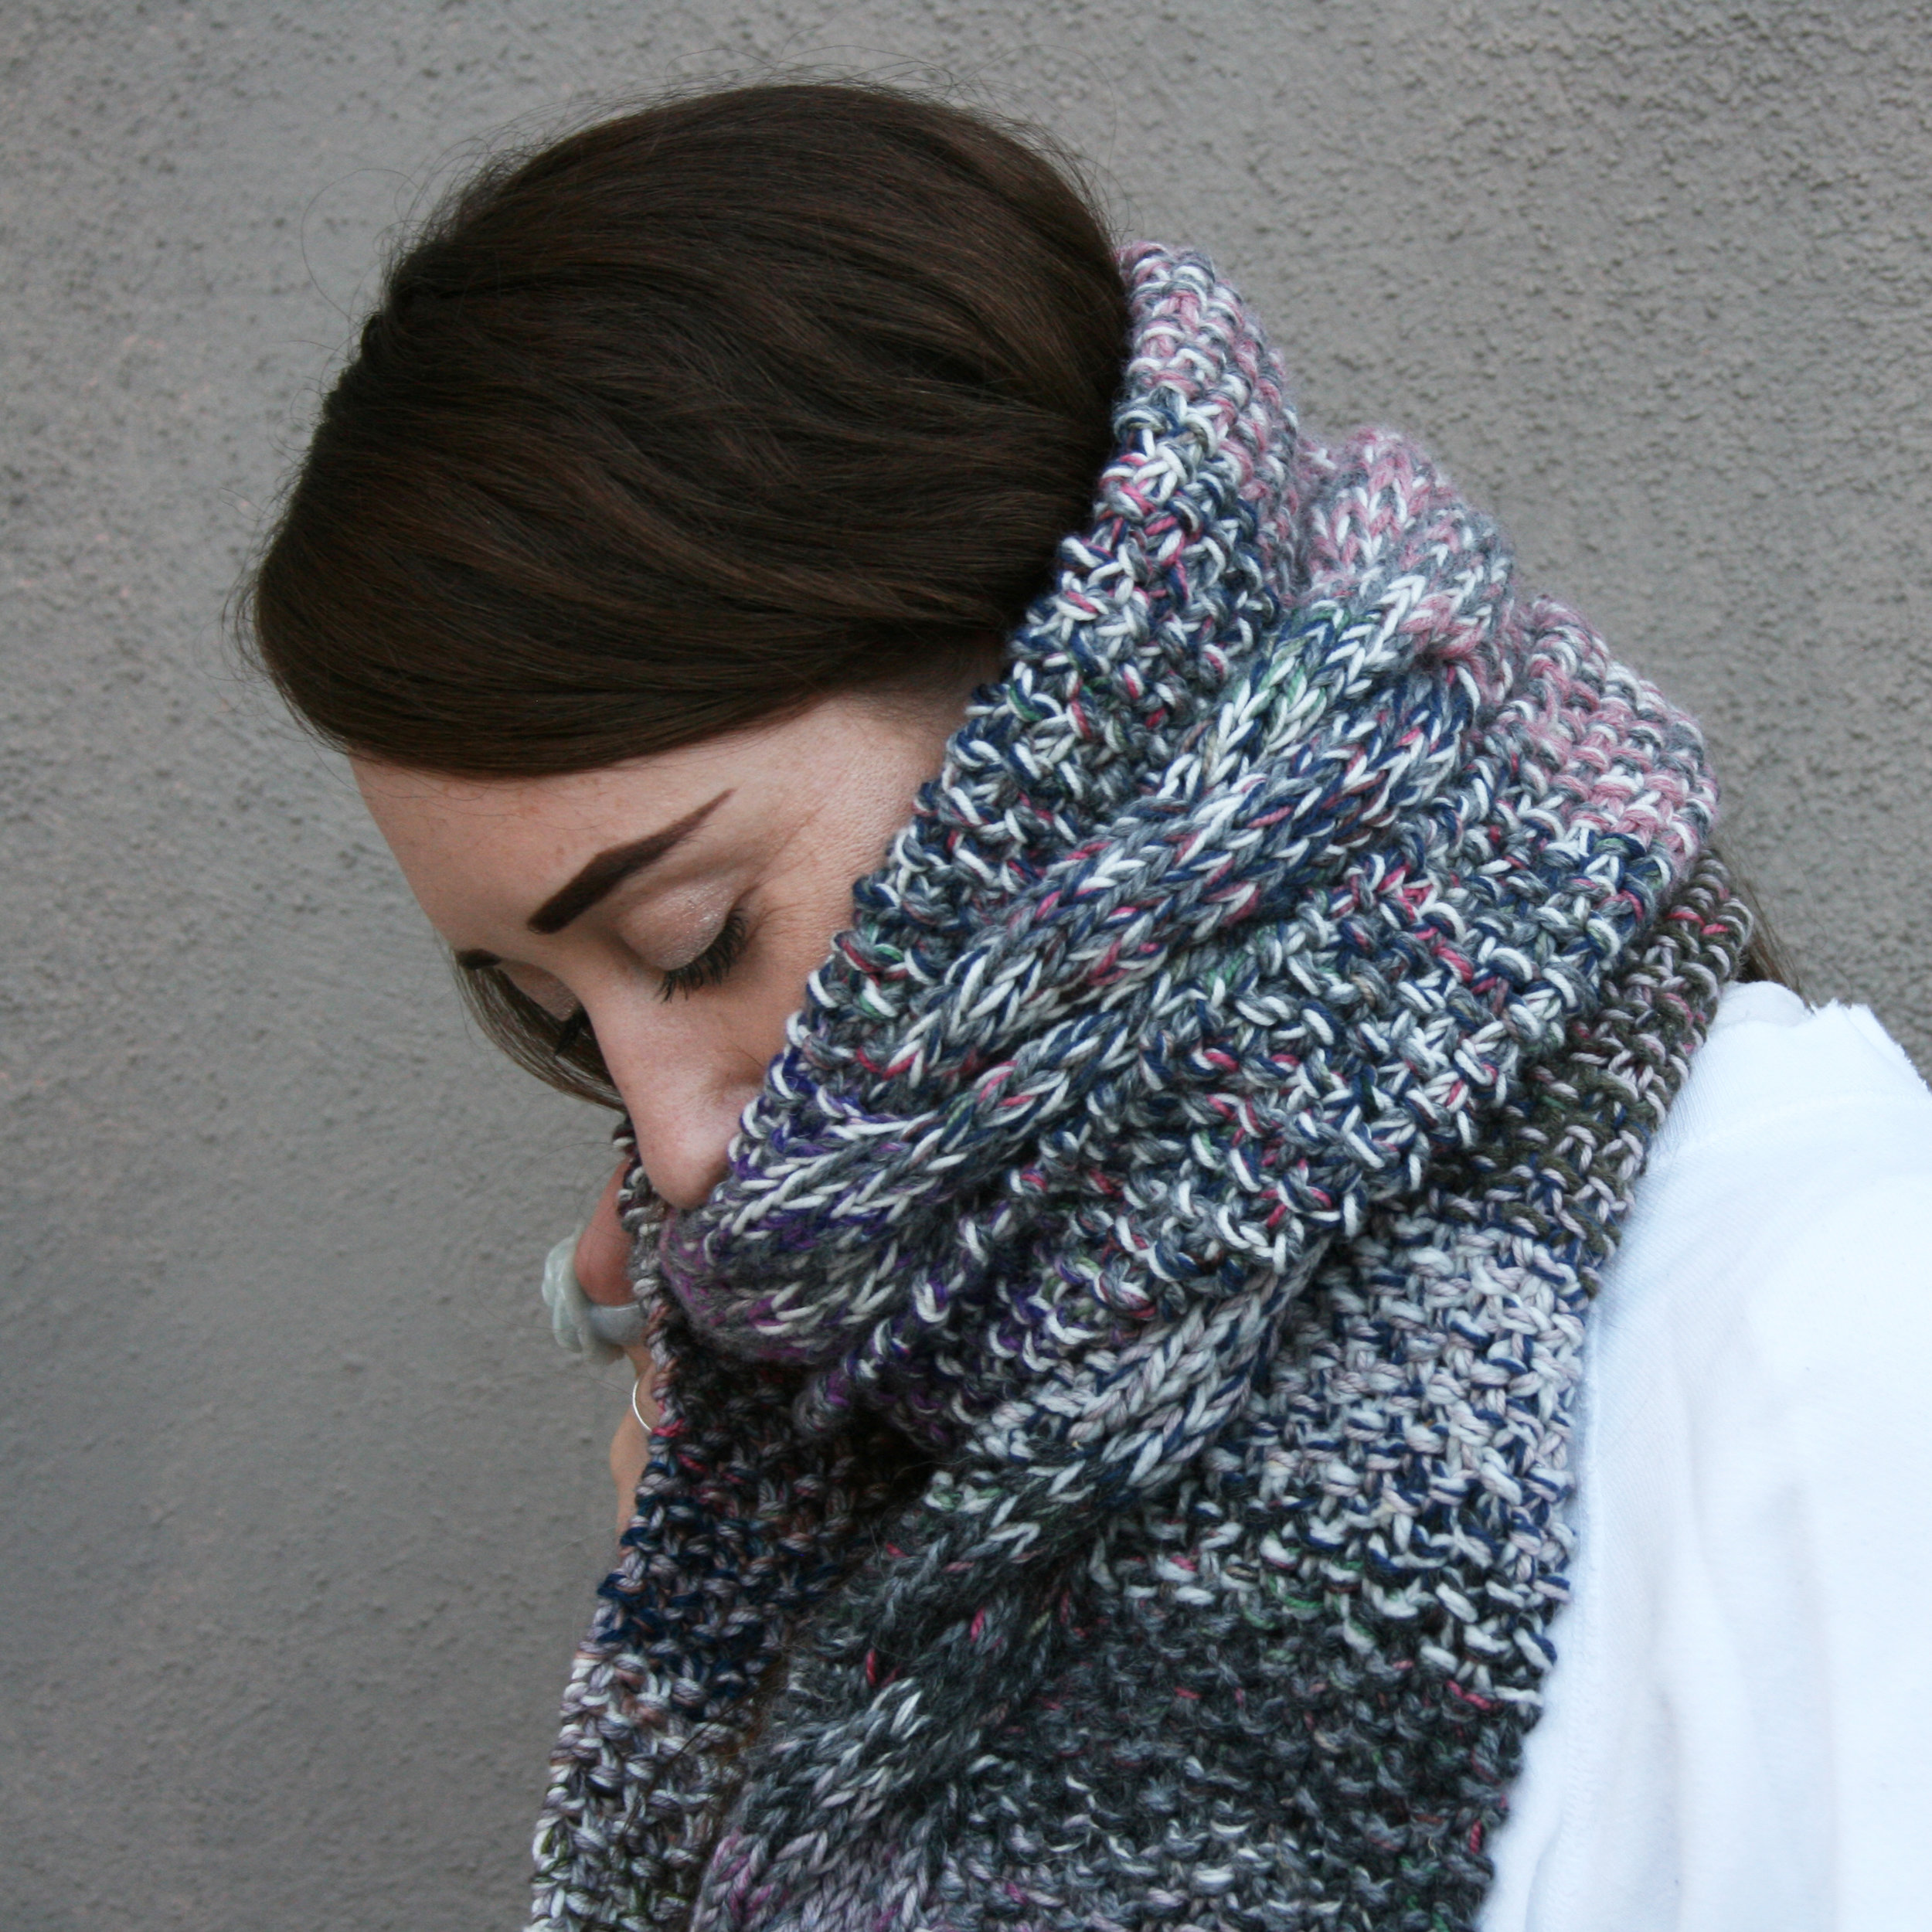 cable-scraps-scarf-pattern-parknknit-park-williams-elisemade-test-knit